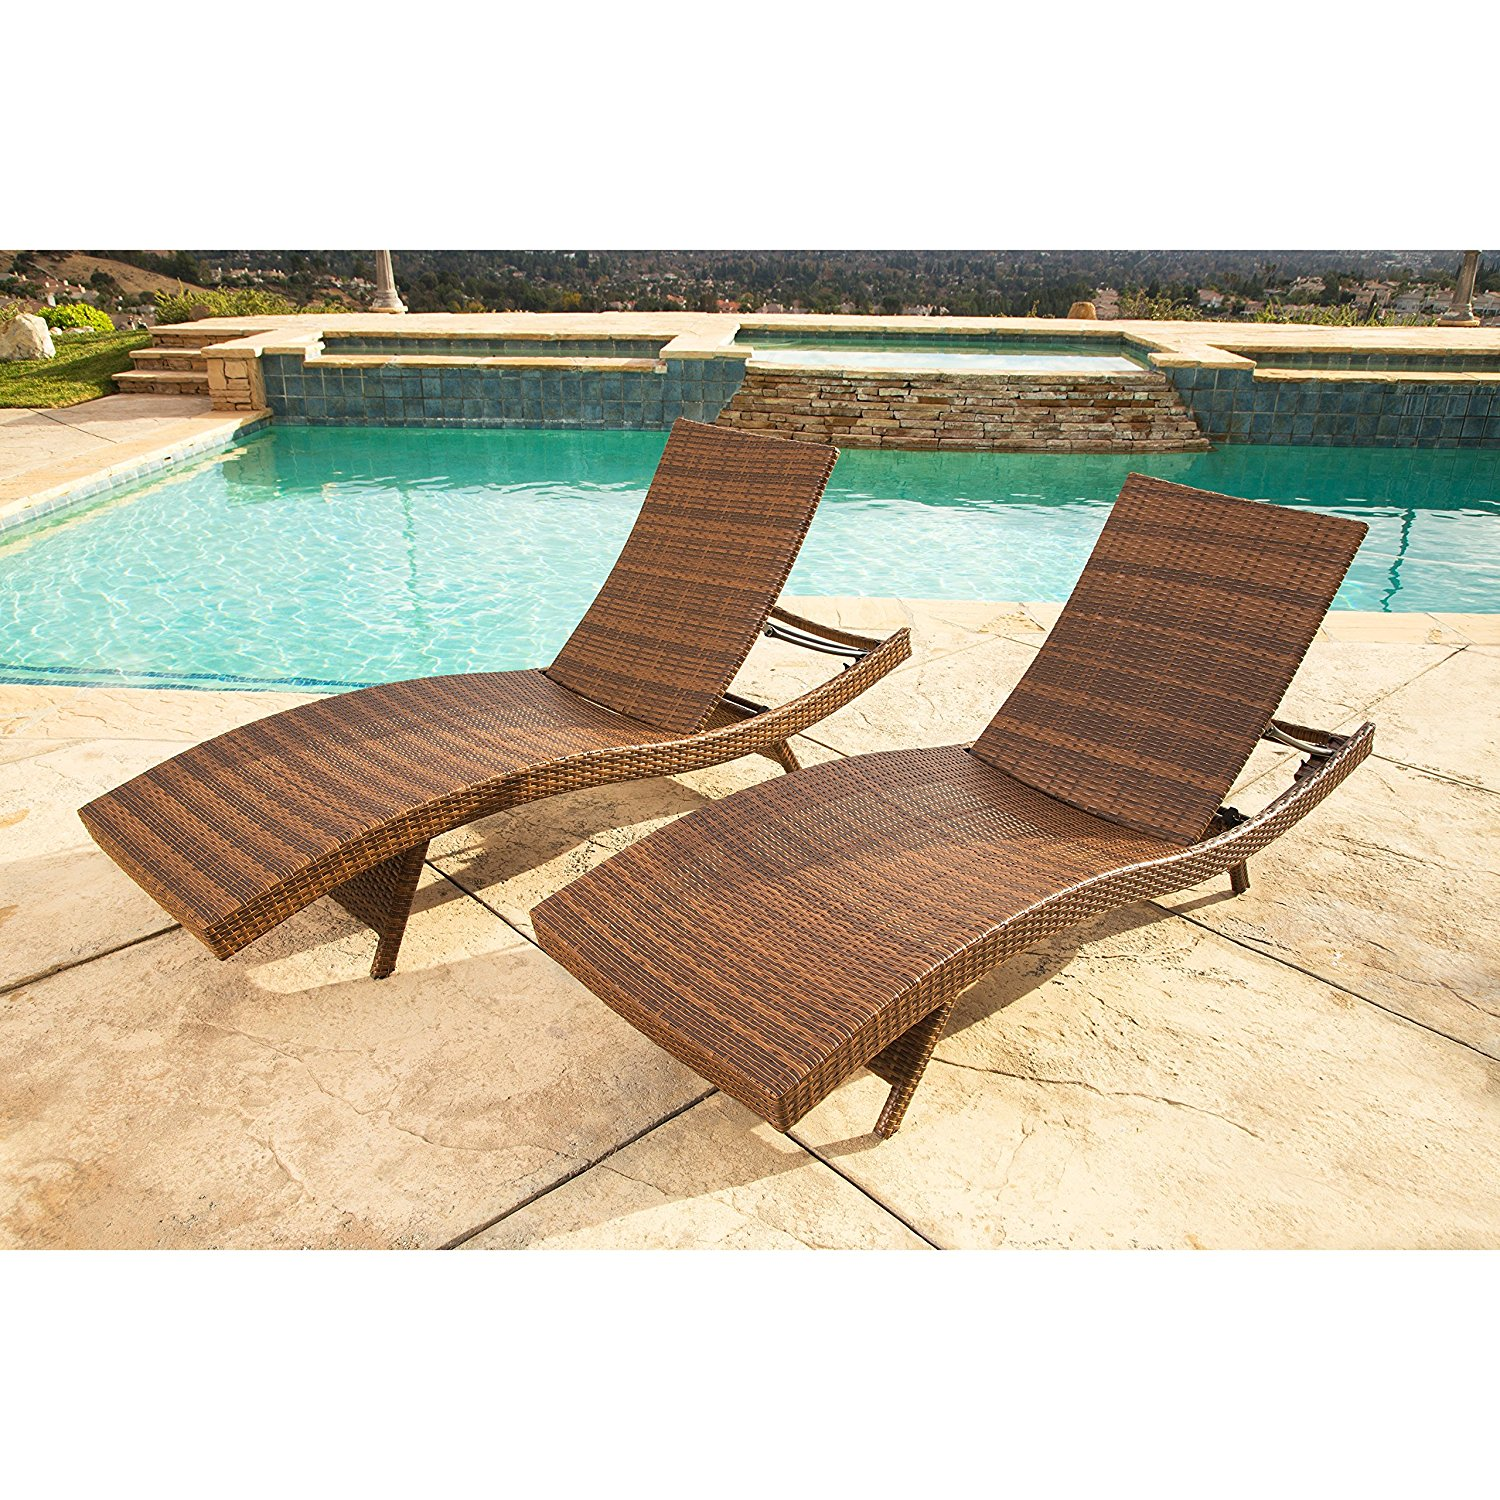 14th Mobility Water Resistant Comfortable Outdoor Patio Pool Chaise Lounge Set of 2 with Adjustable Back Frame, Constructed from Iron Frame and PE Wicker, Brown Color + Expert Guide